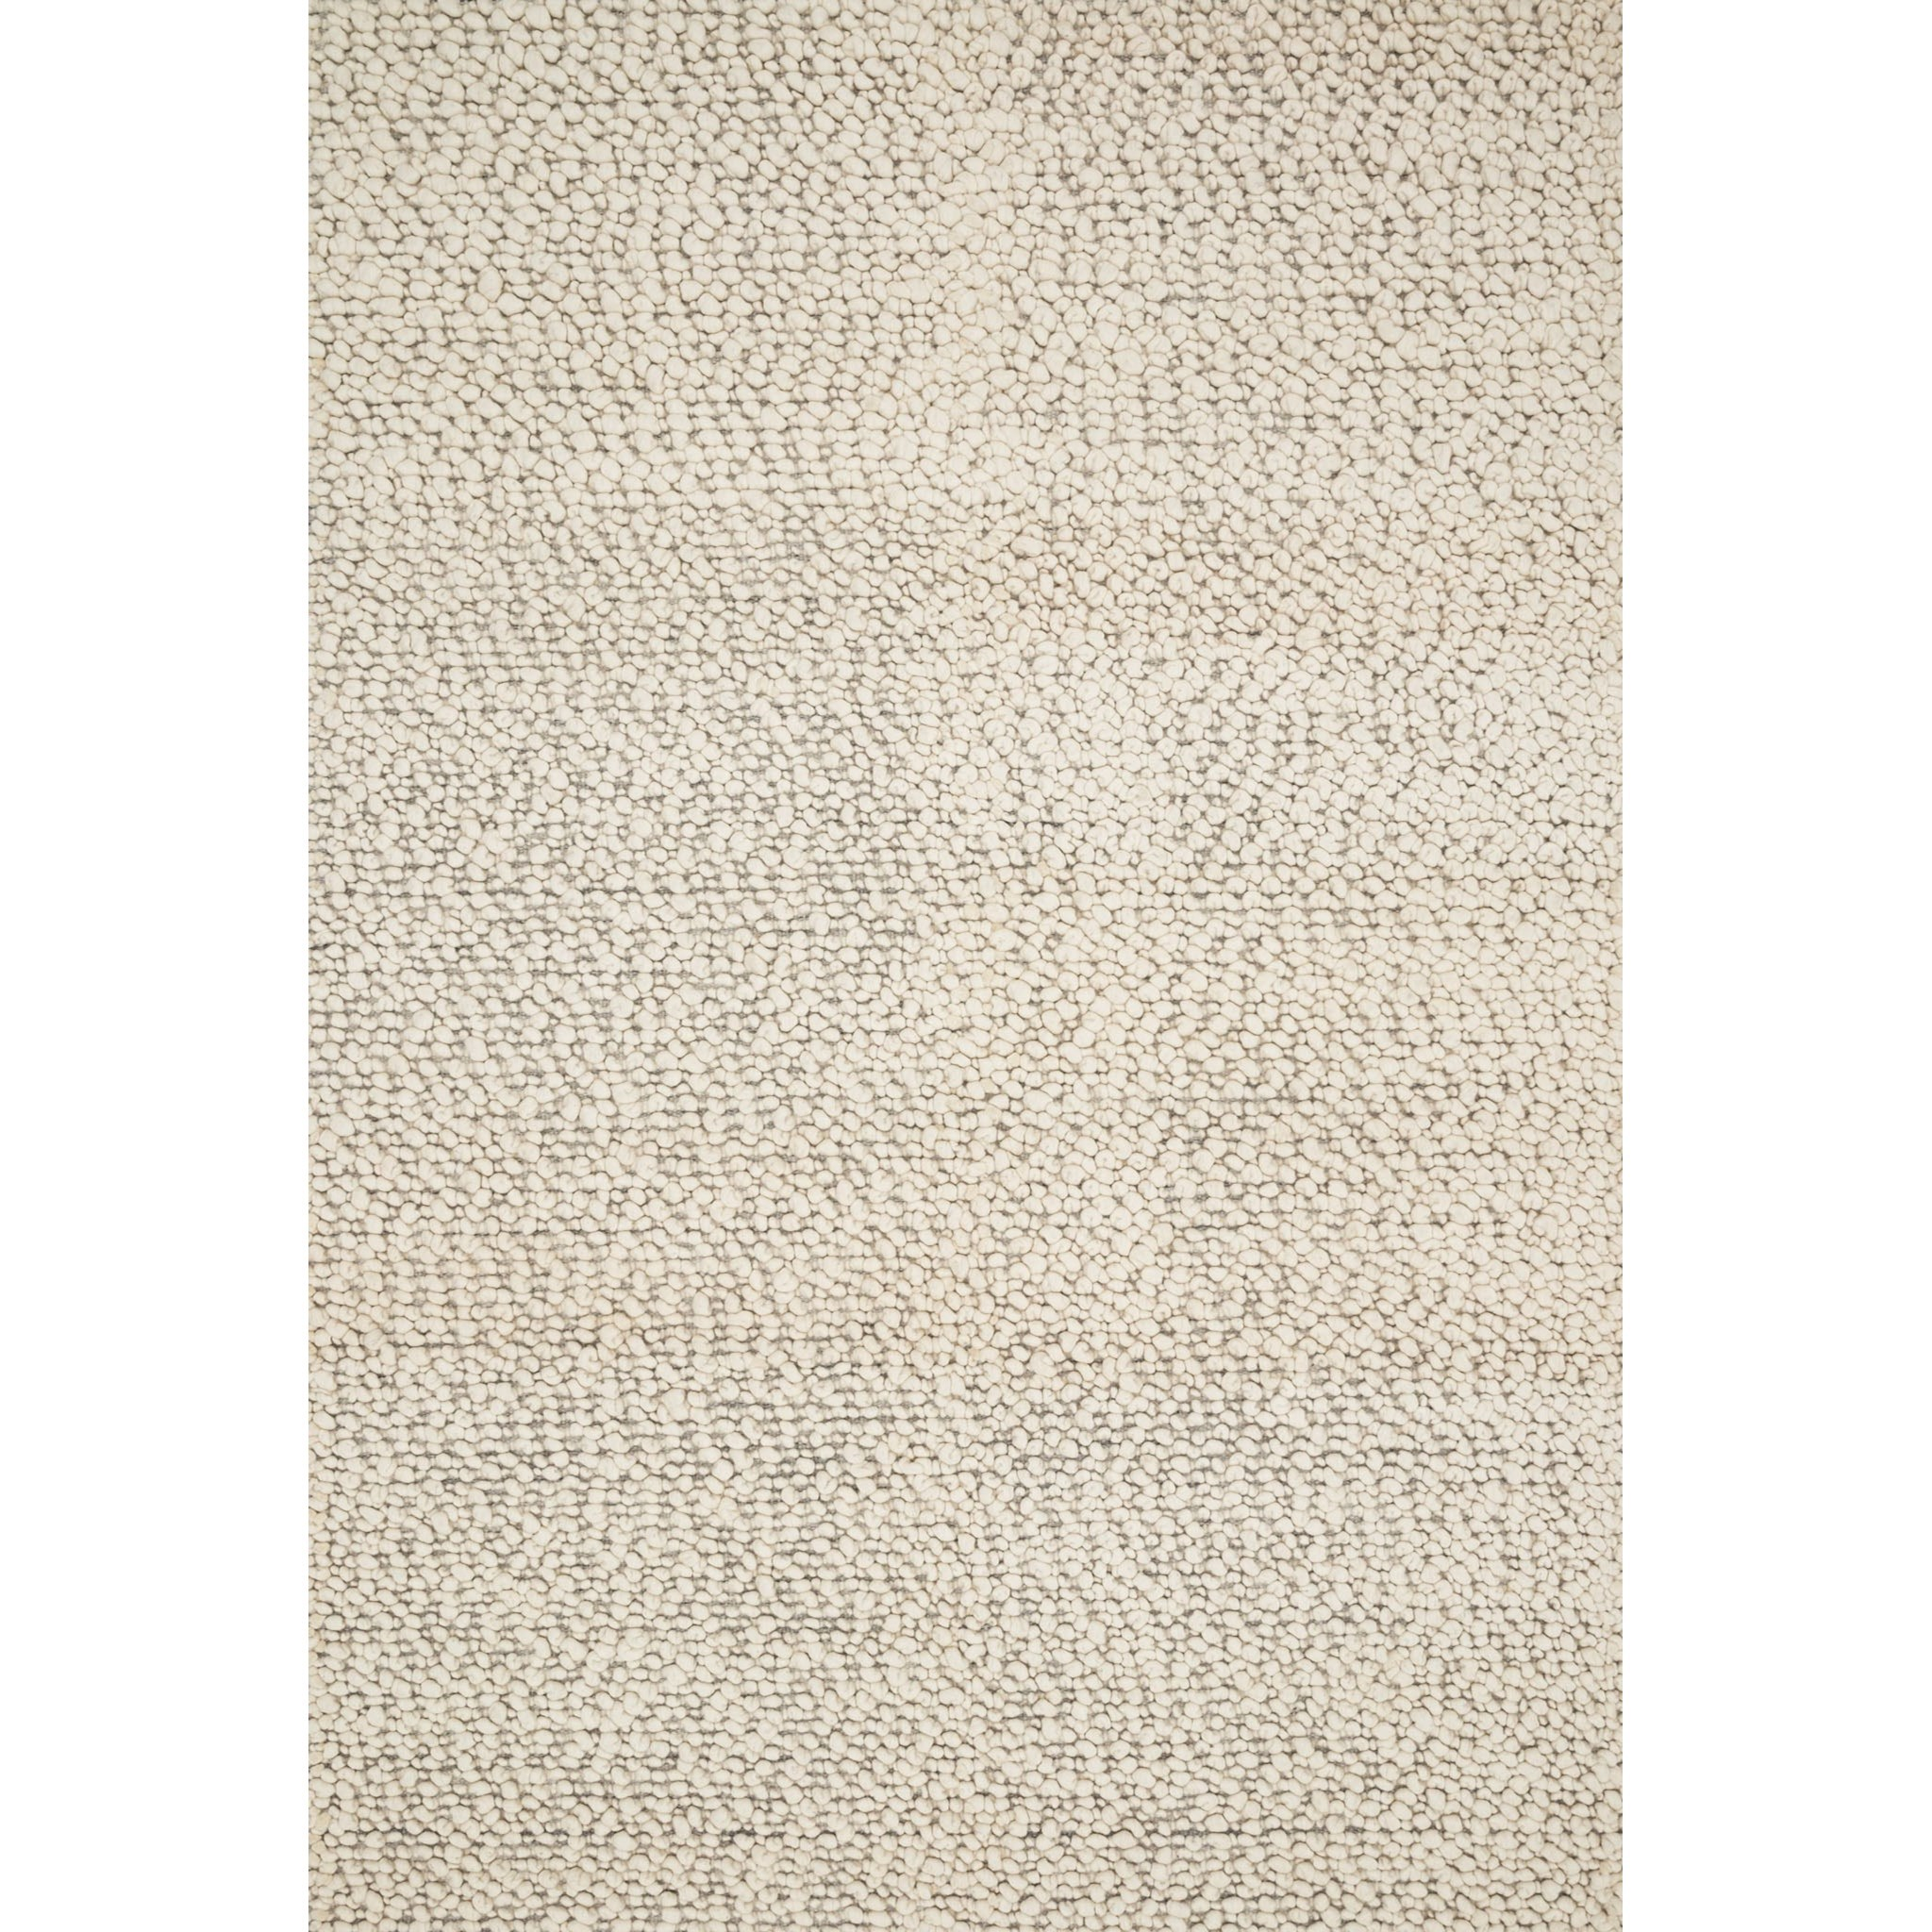 """Quarry 9'-3"""" x 13' Rug by Loloi Rugs at Virginia Furniture Market"""